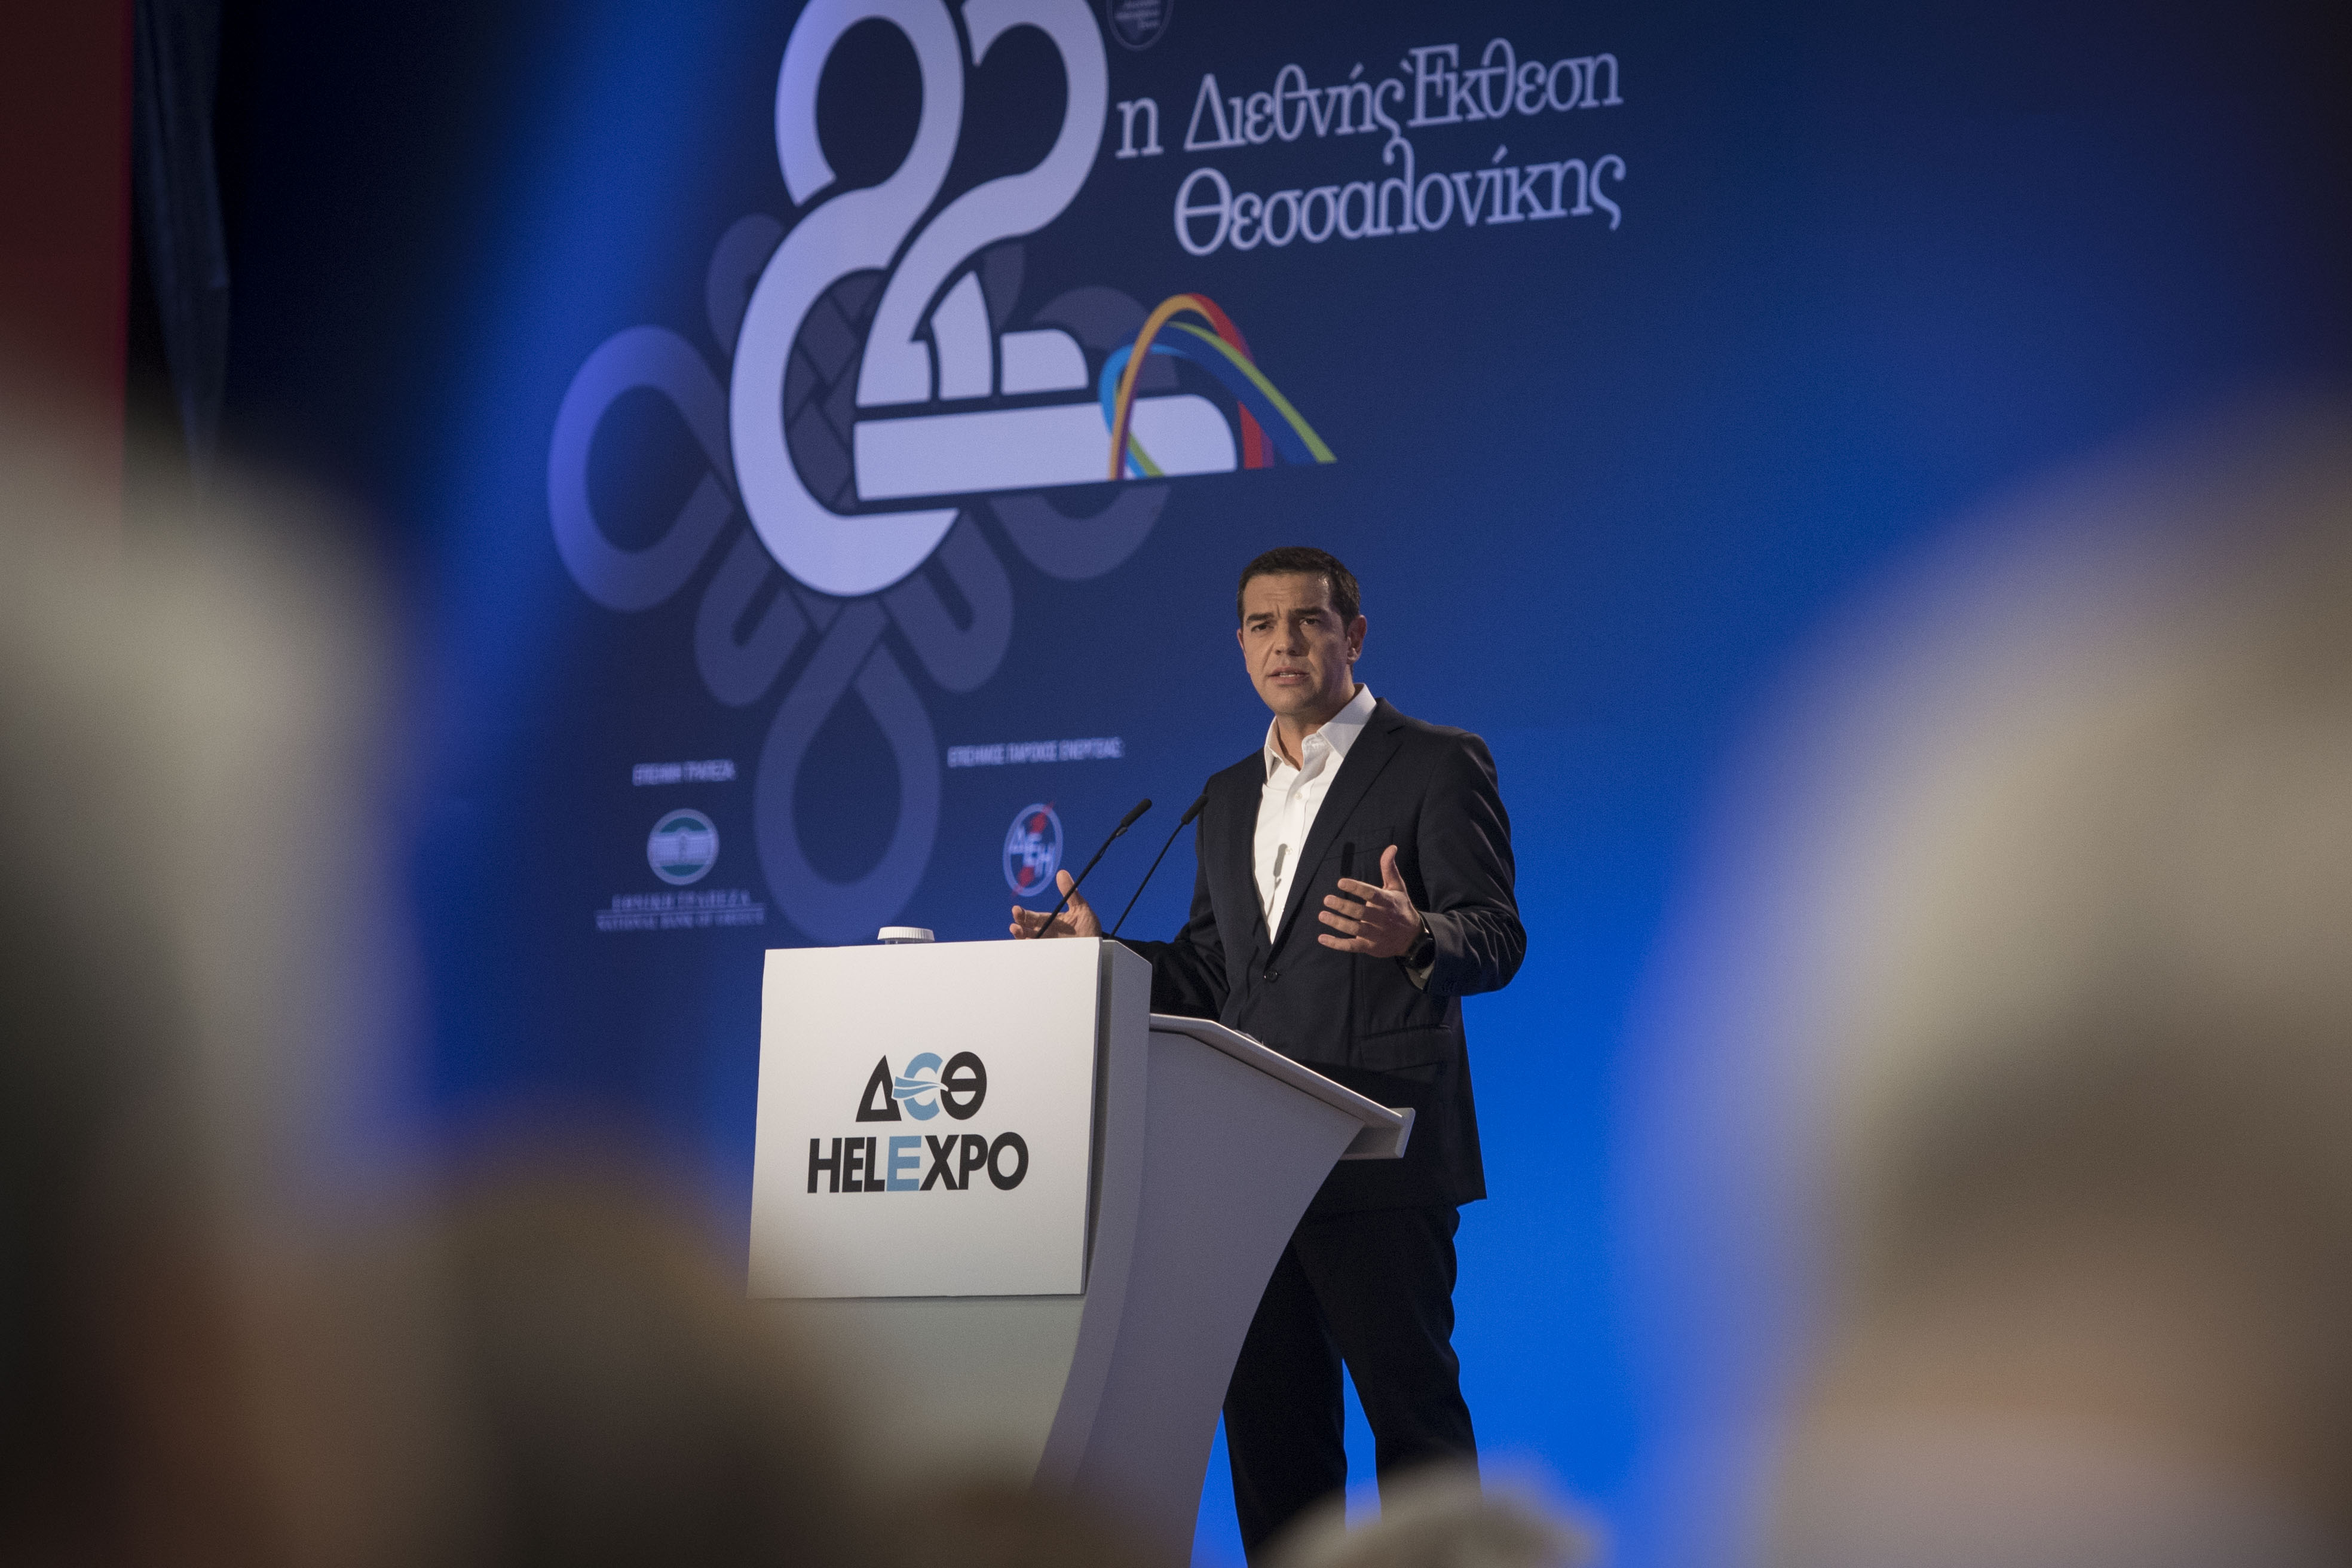 The government is now focusing on the country's future Tsipras says at TIF